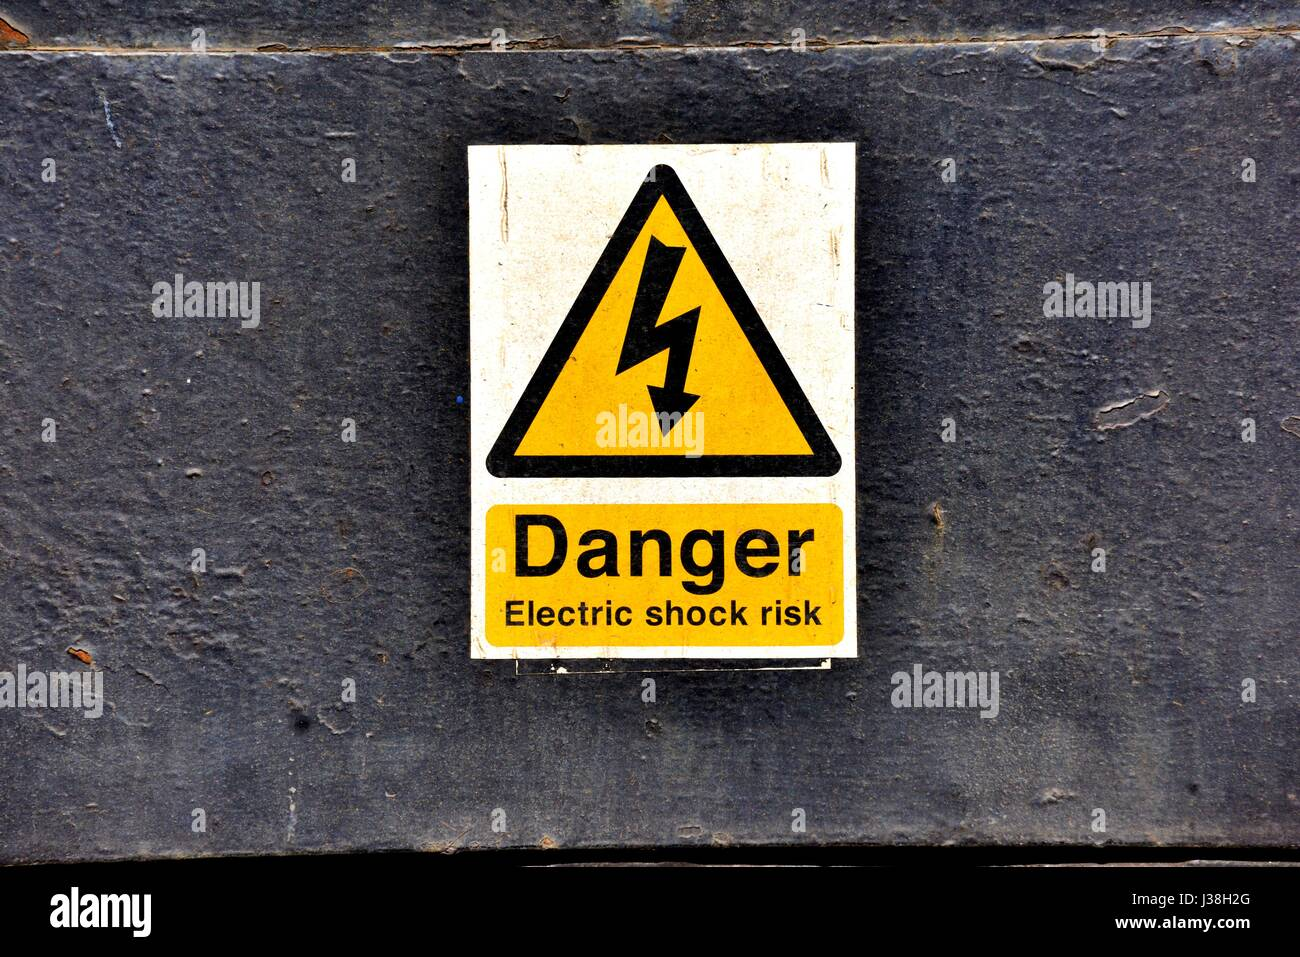 Danger electric shock risk sign - Stock Image